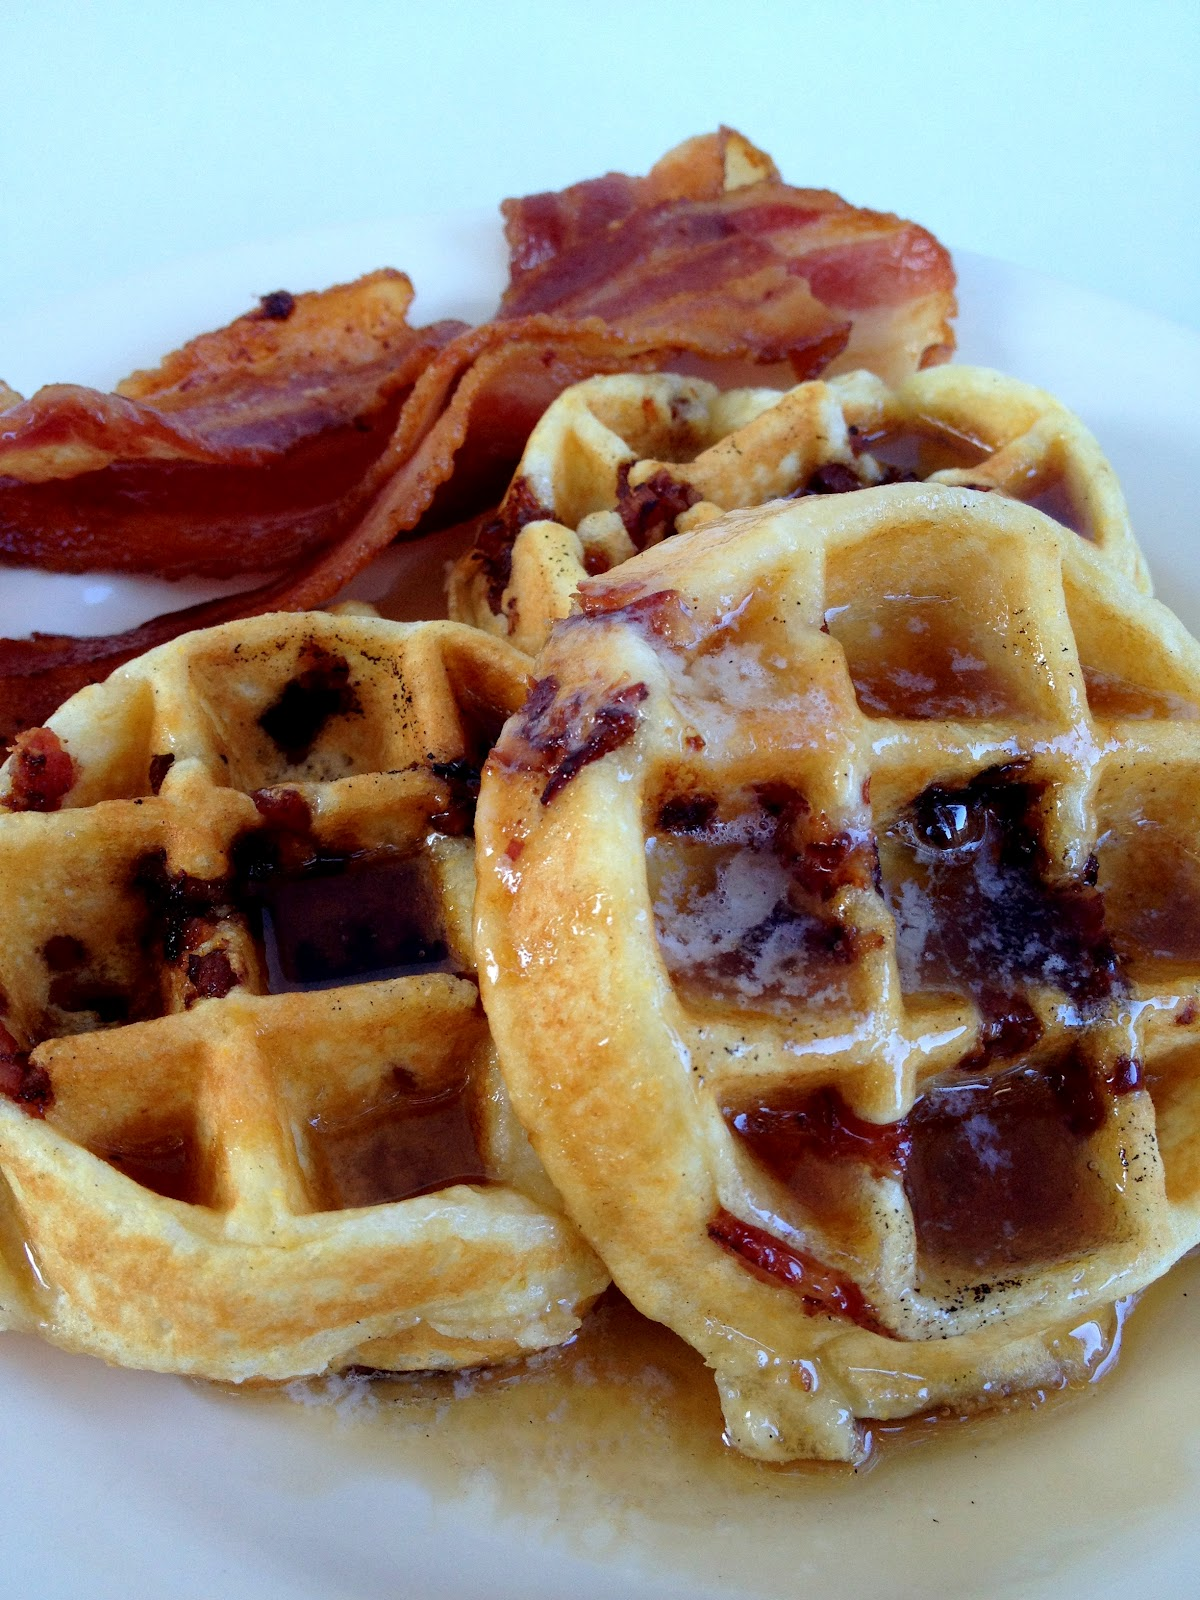 ... & whimsies for spreading joy*: Brown Sugar Bacon Belgian Waffles